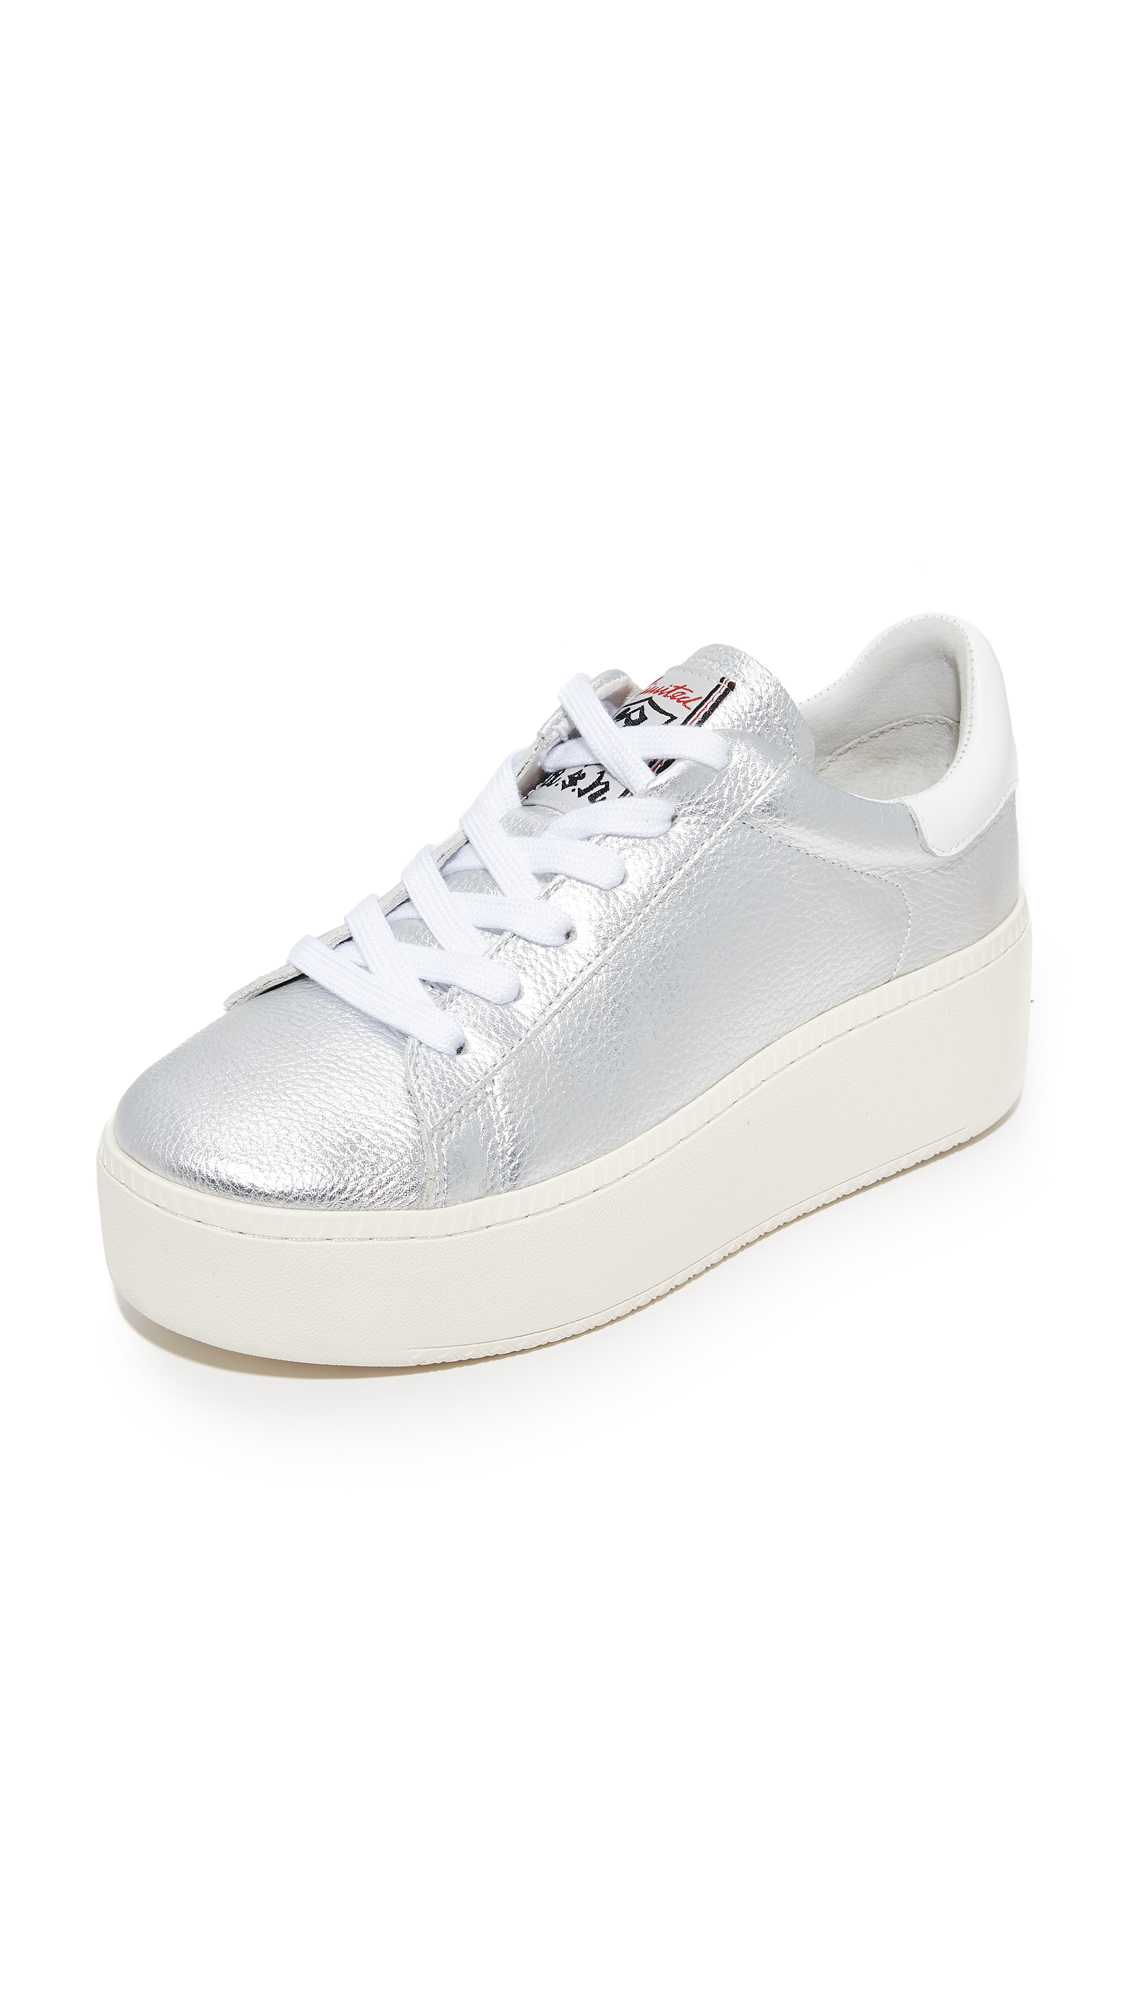 Ash Cult Platform Sneakers - Silver/White at Shopbop